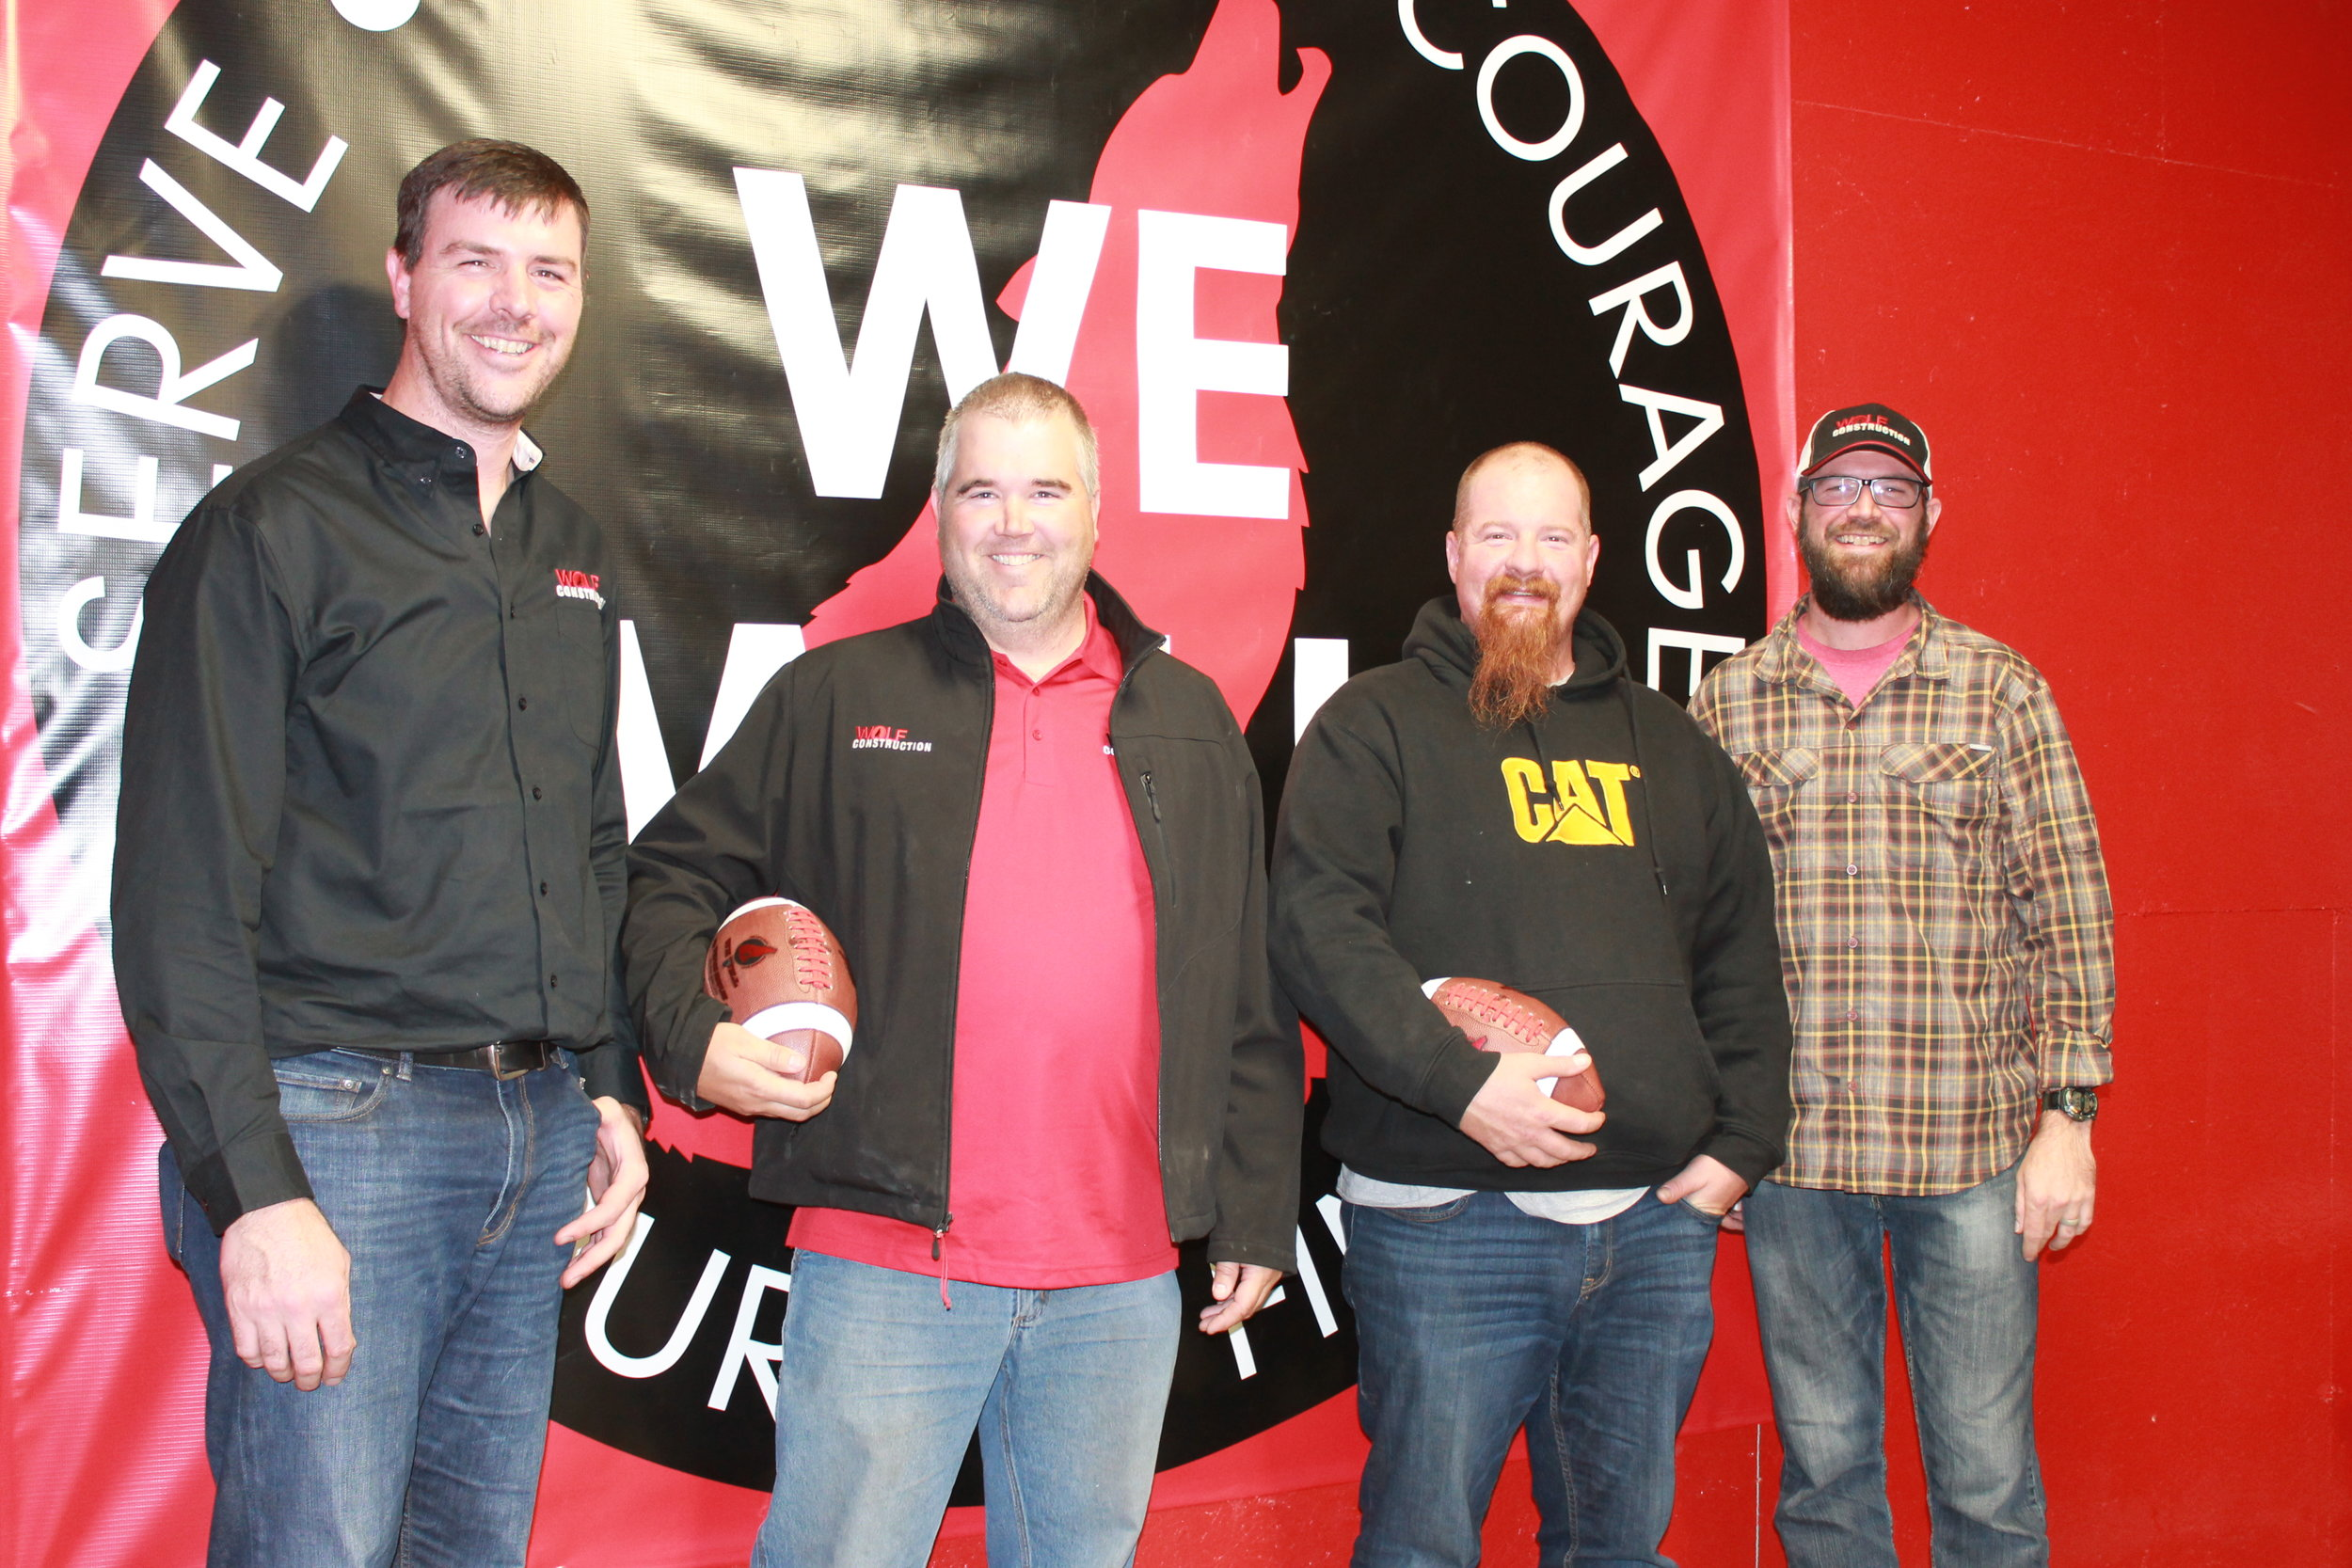 November 2017 Game Ball Recipients: The most tenured team member at Wolf Construction, Greg Goeser is a Framing Superintendent. Relentless is a word that can easily be used to describe Greg. He's relentless about finishing a job well and determined that those around him should be also. He's relentless about his family, and funny enough, relentless about travel and charity.  Minnesota Framing Superintendent Jason Potvin has been with Wolf Construction since 2010 when he started as carpenter. Crews, subs, general contractors, and fellow Wolf Construction employees are humbled by Jason's work ethic and ability to get tough jobs done. Jason is focused and intense about finishing. He's a planner and a soft spoken leader. The dad of three active boys, he has no free time! Pictured: R. Vandis, G. Goeser, J. Potvin, J. VanDis